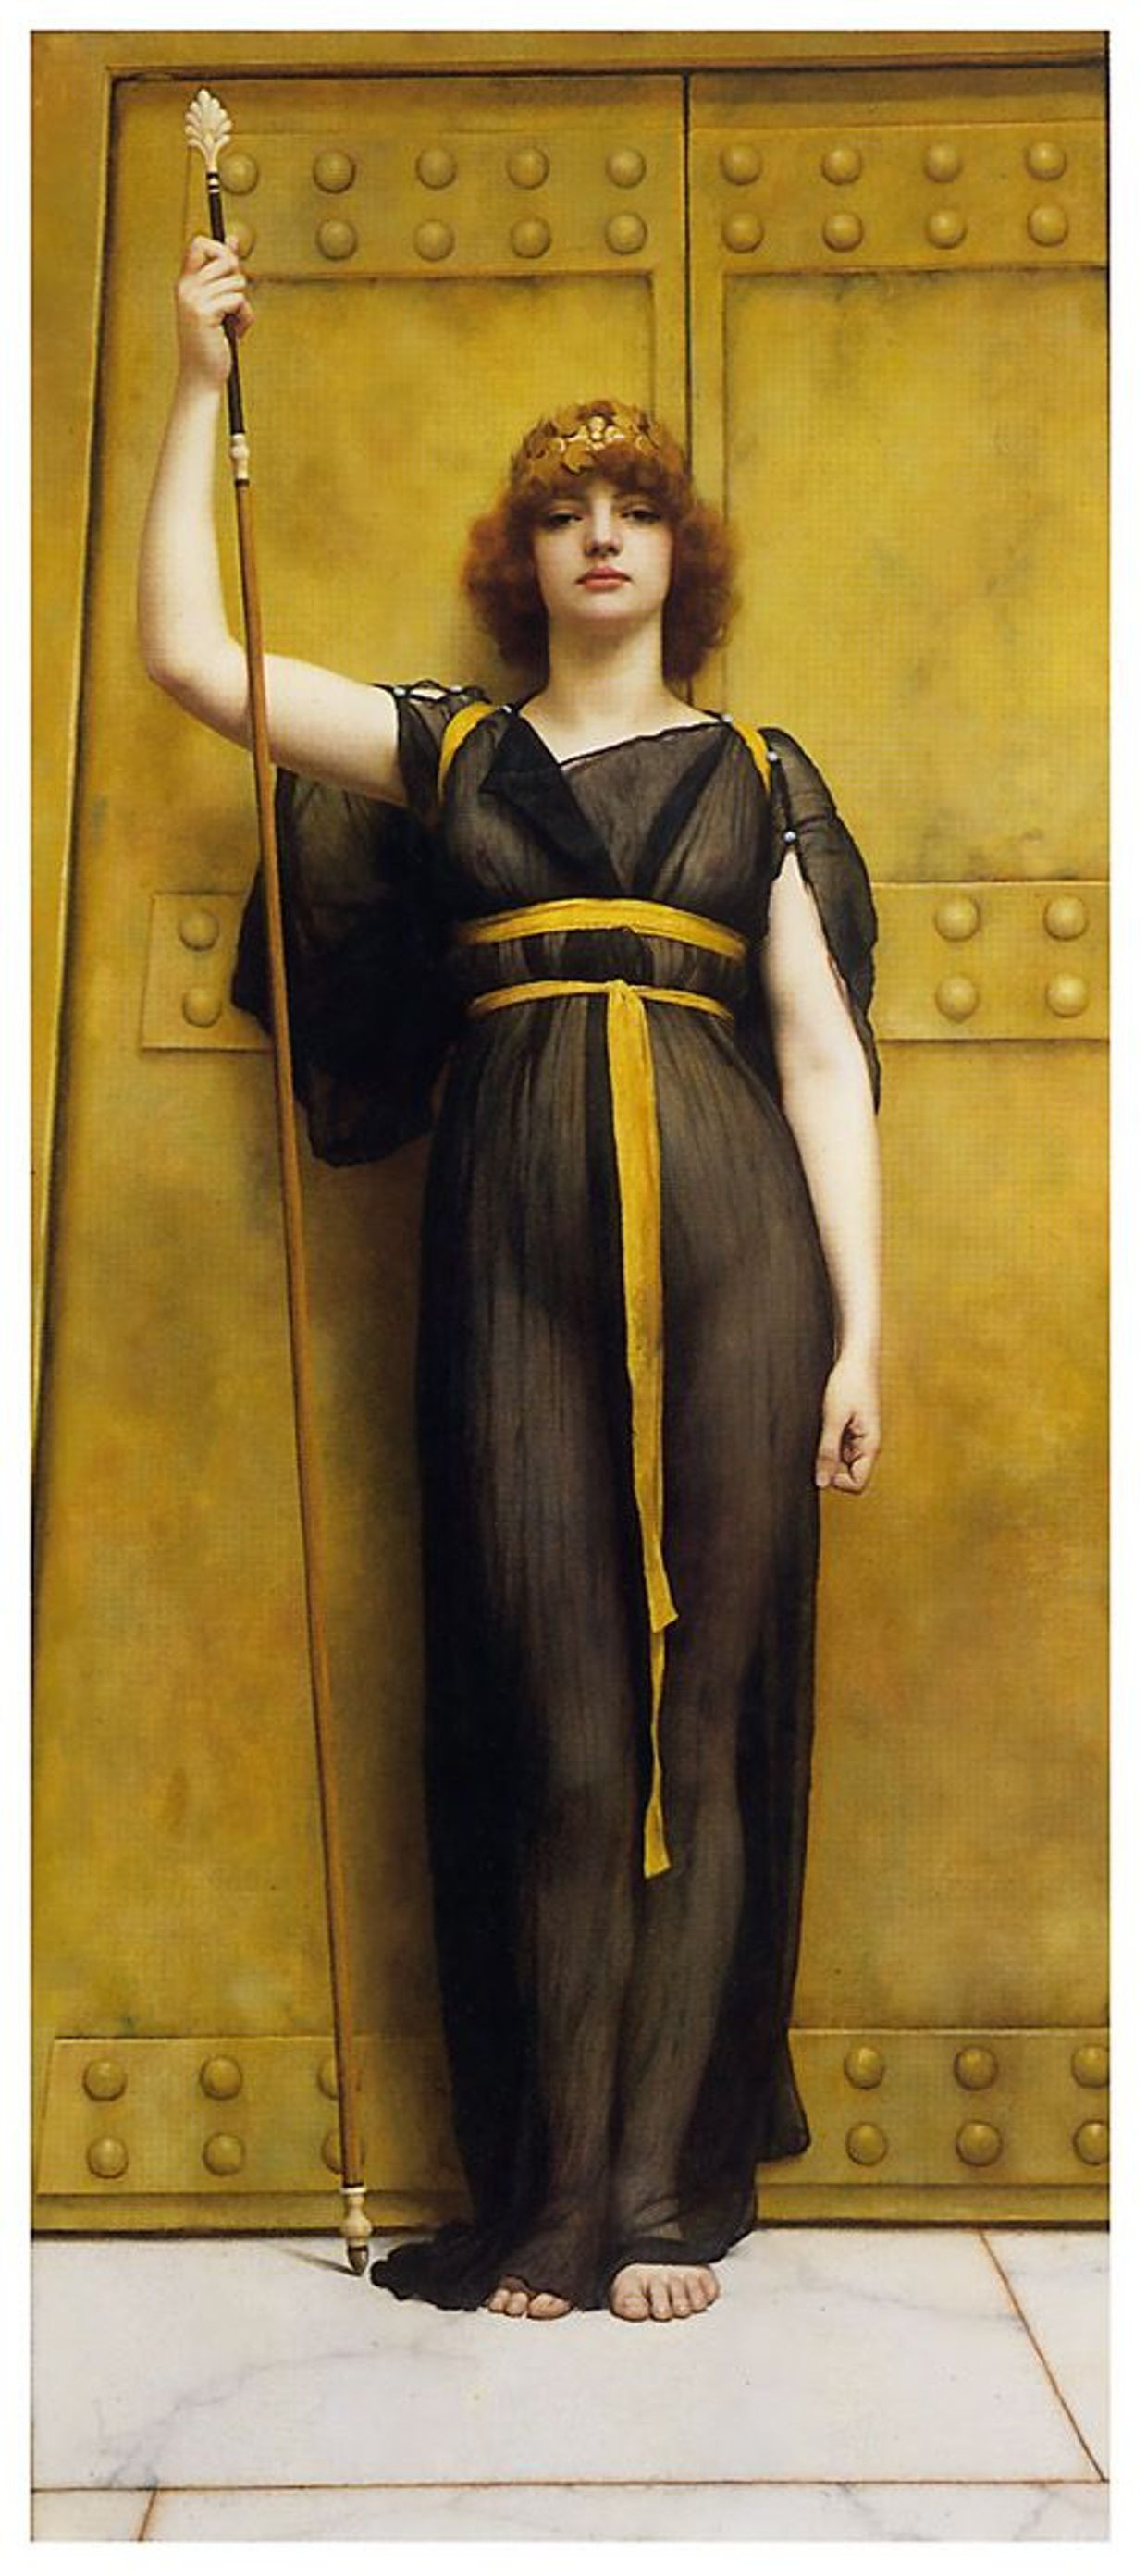 Original from J.W. Godward 1895